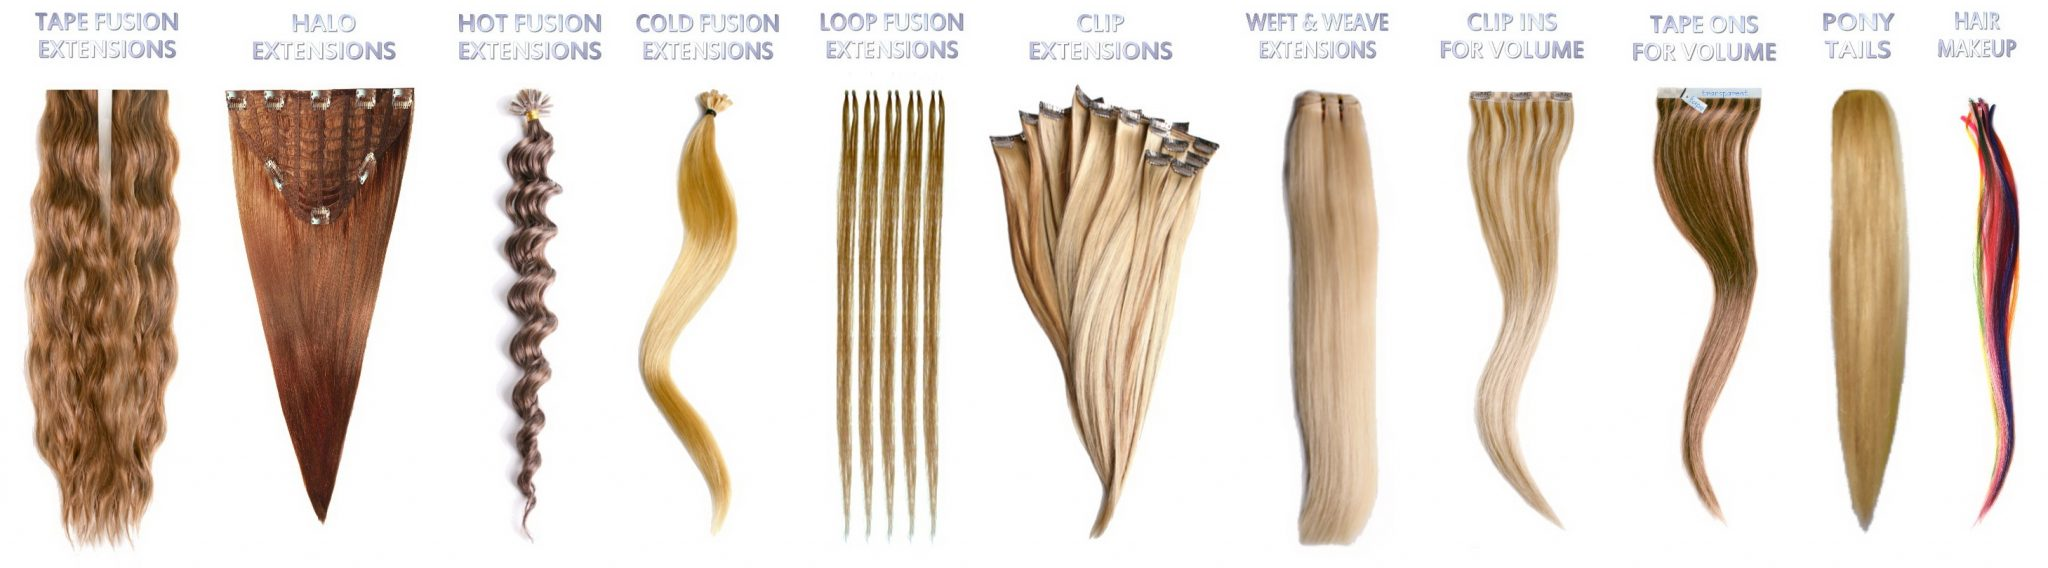 Hair Extensions Top Quality Largest Selection Professional